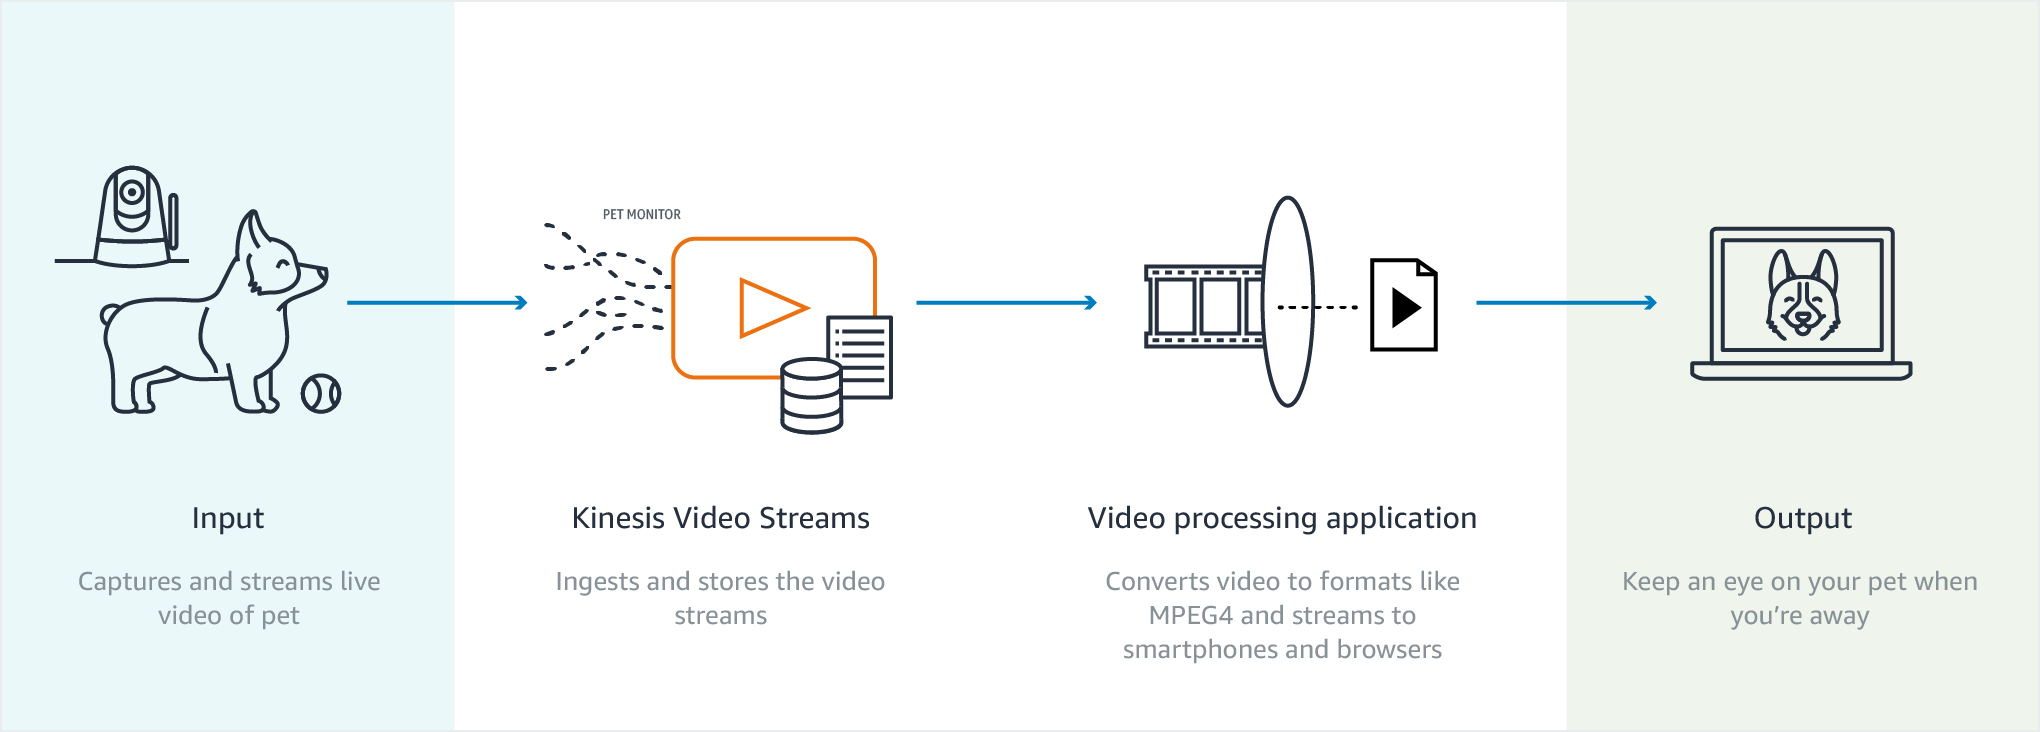 diagram-kinesis-video-streams-pet-monitor-use-case